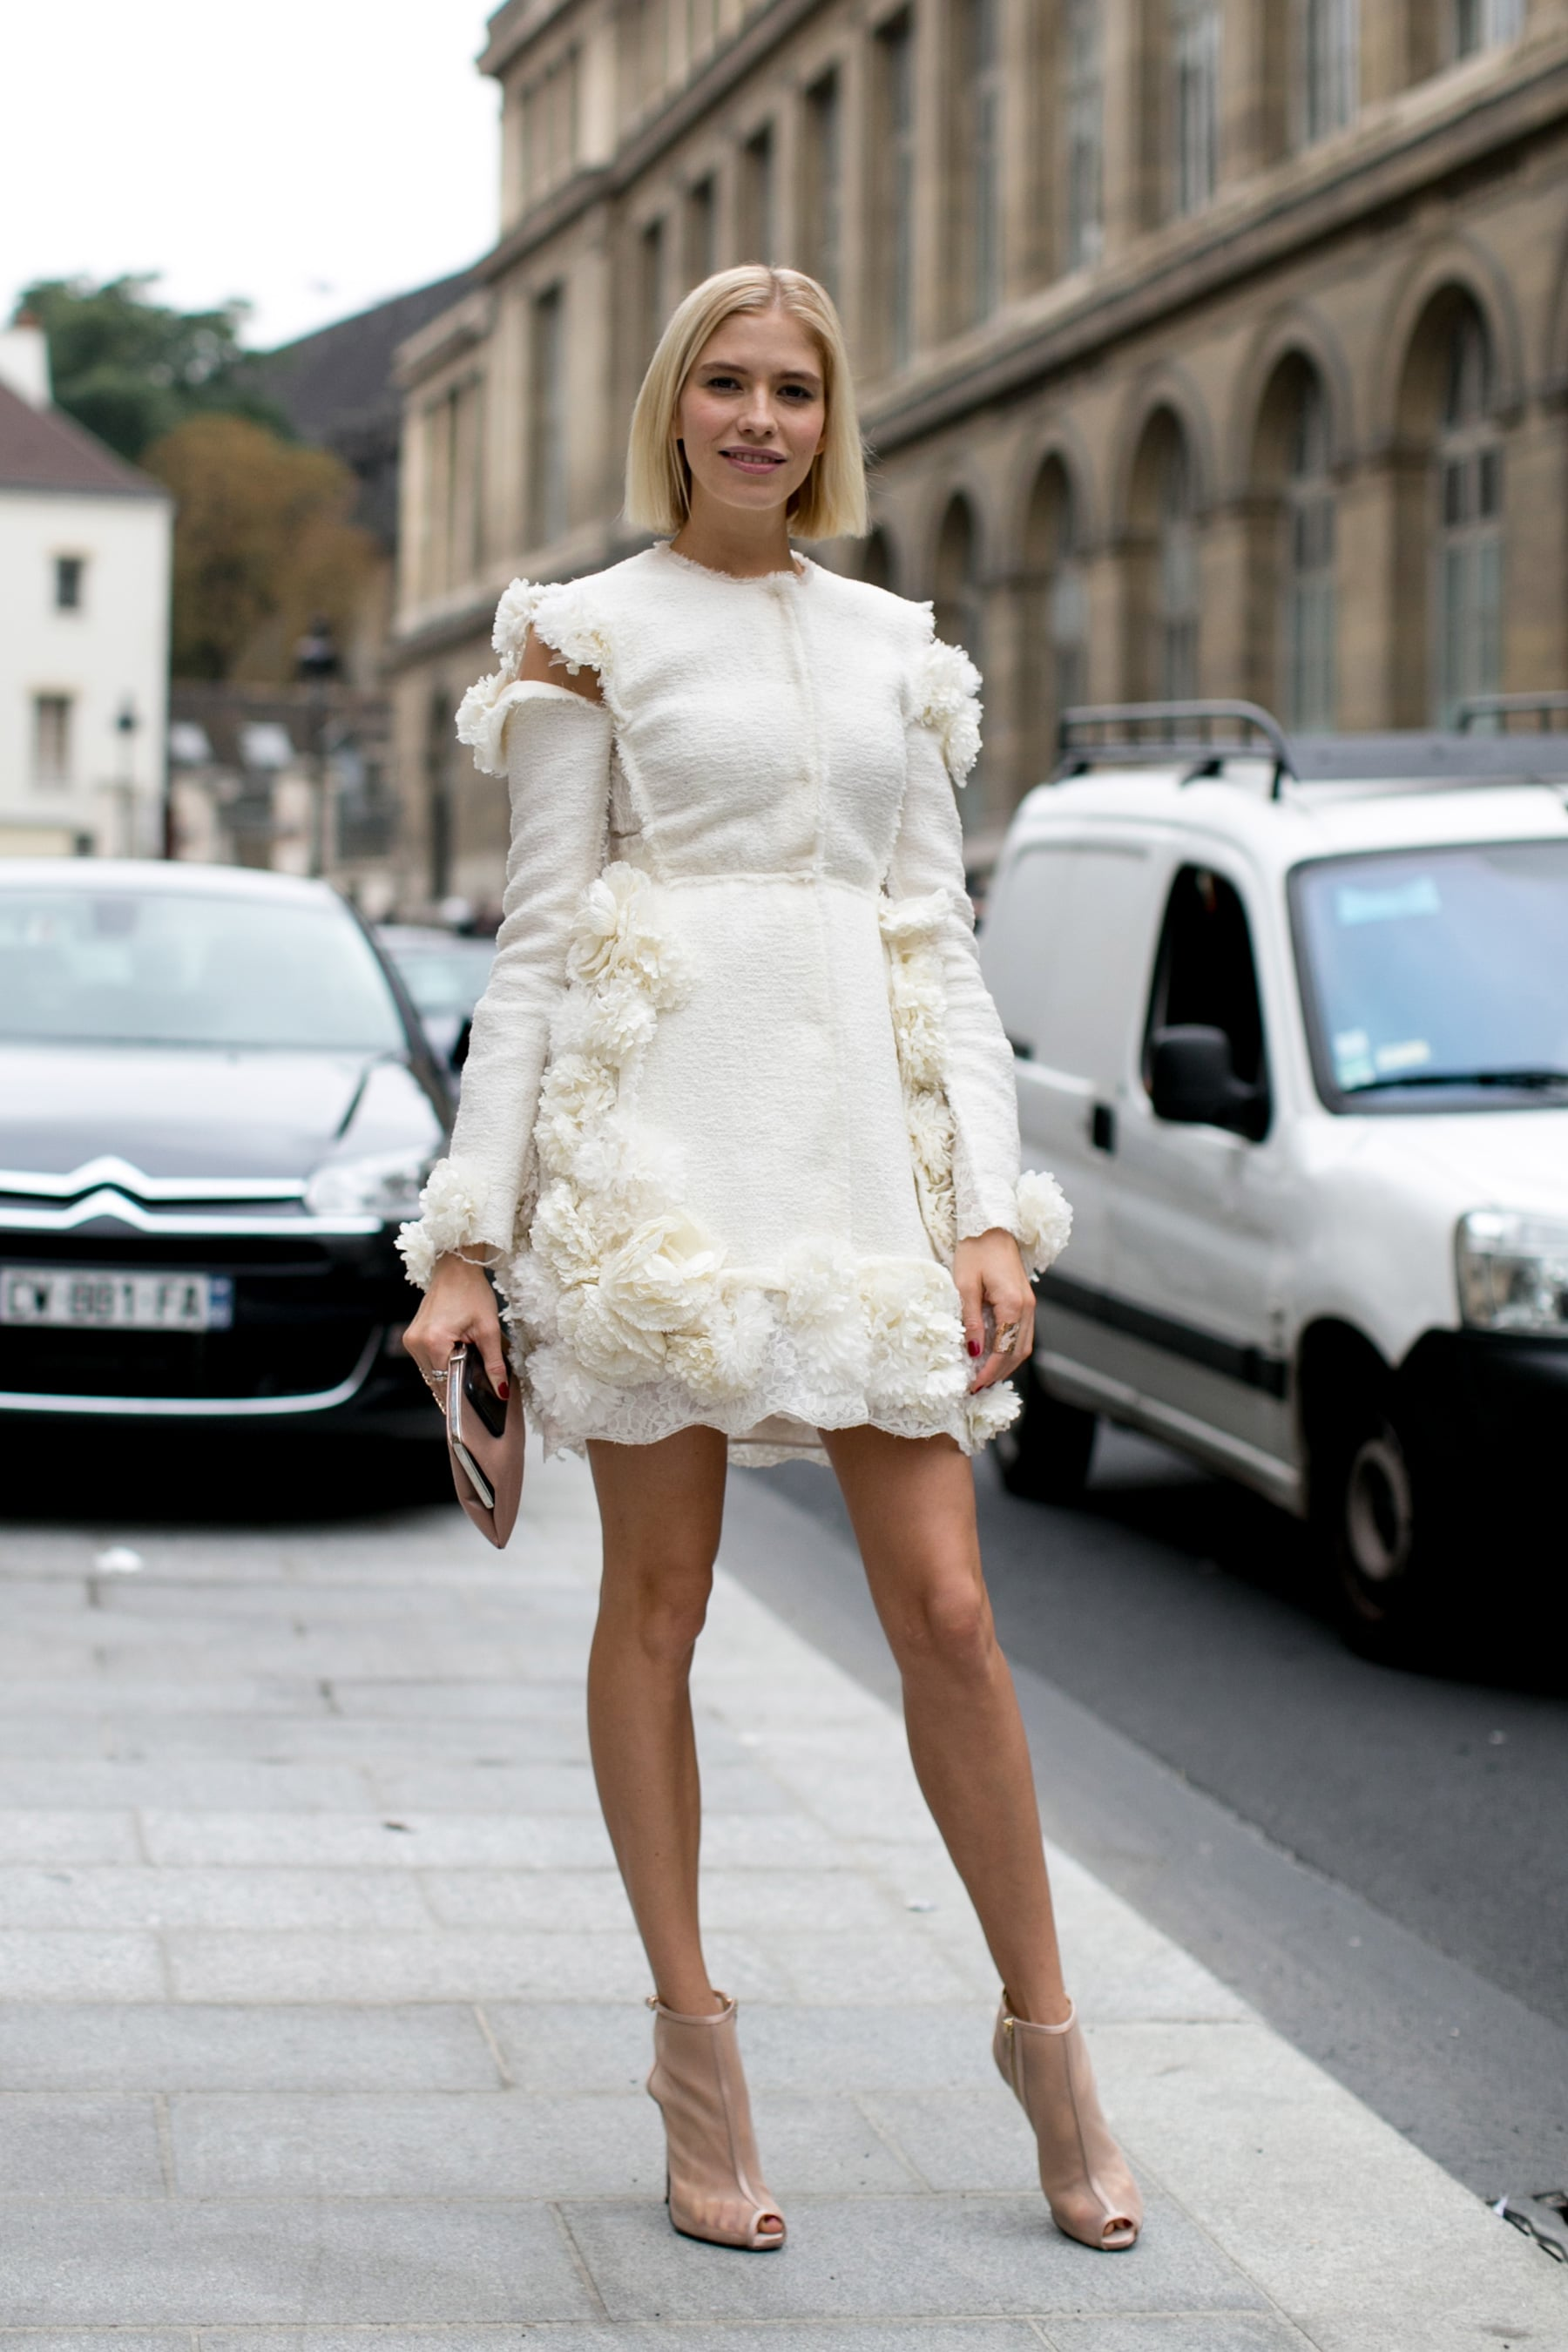 Elena Perminova brought a bit of girlie drama in a frothy white dress.